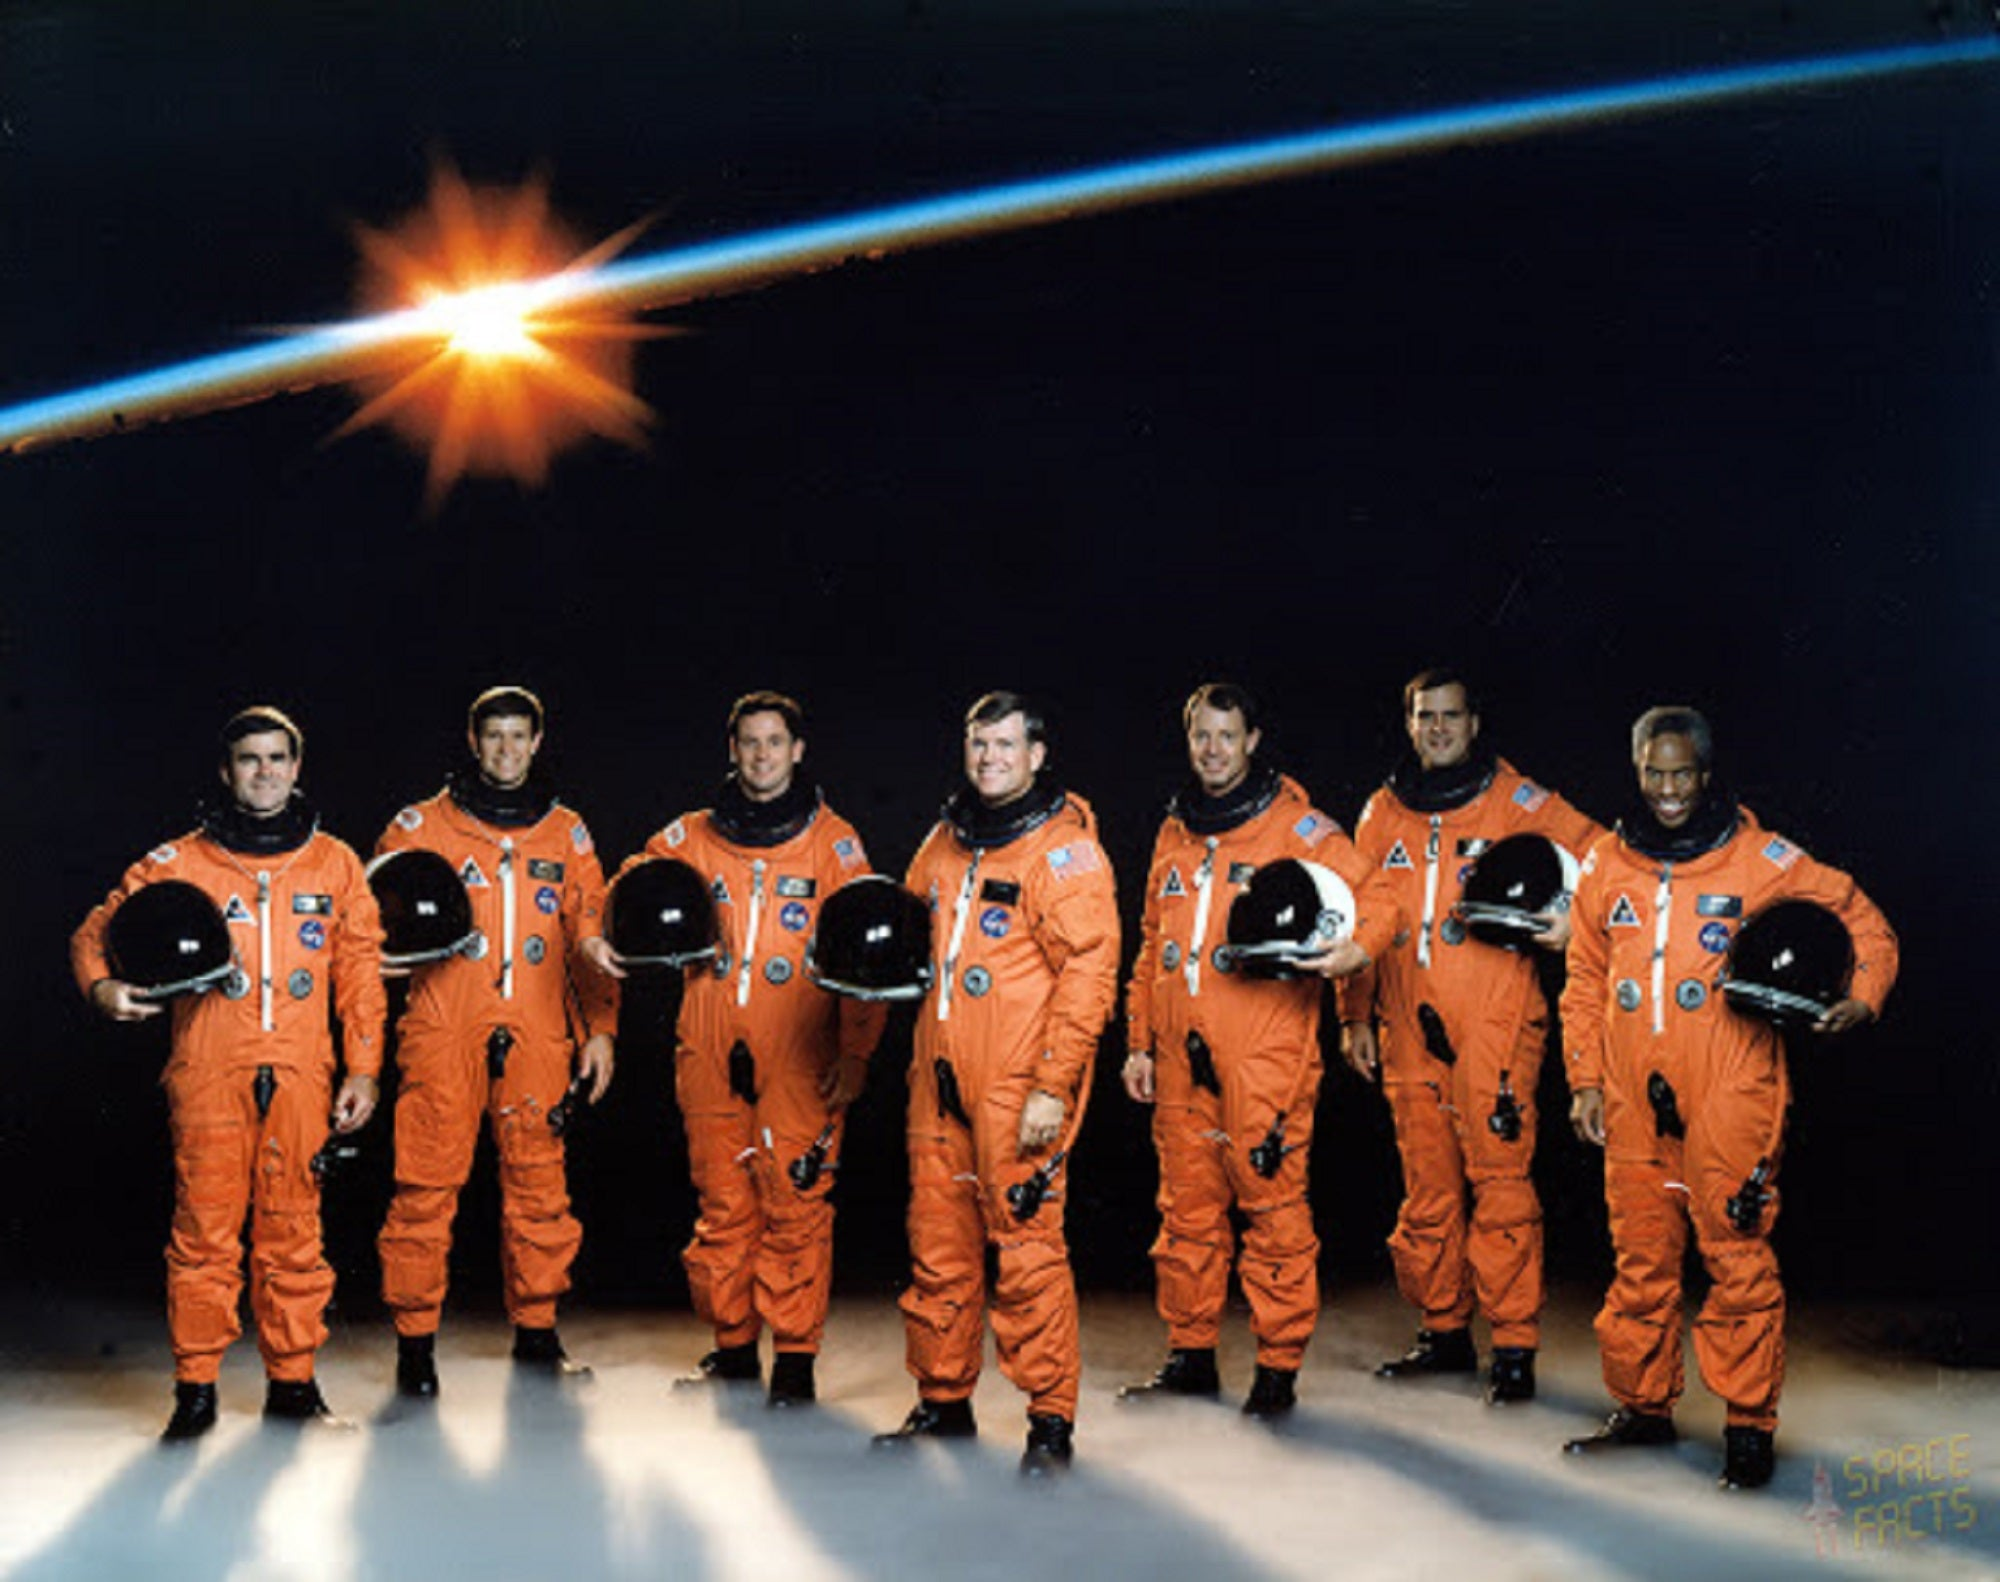 The NASA STS-39 shuttle crew in orange astronaut suits on a space backdrop